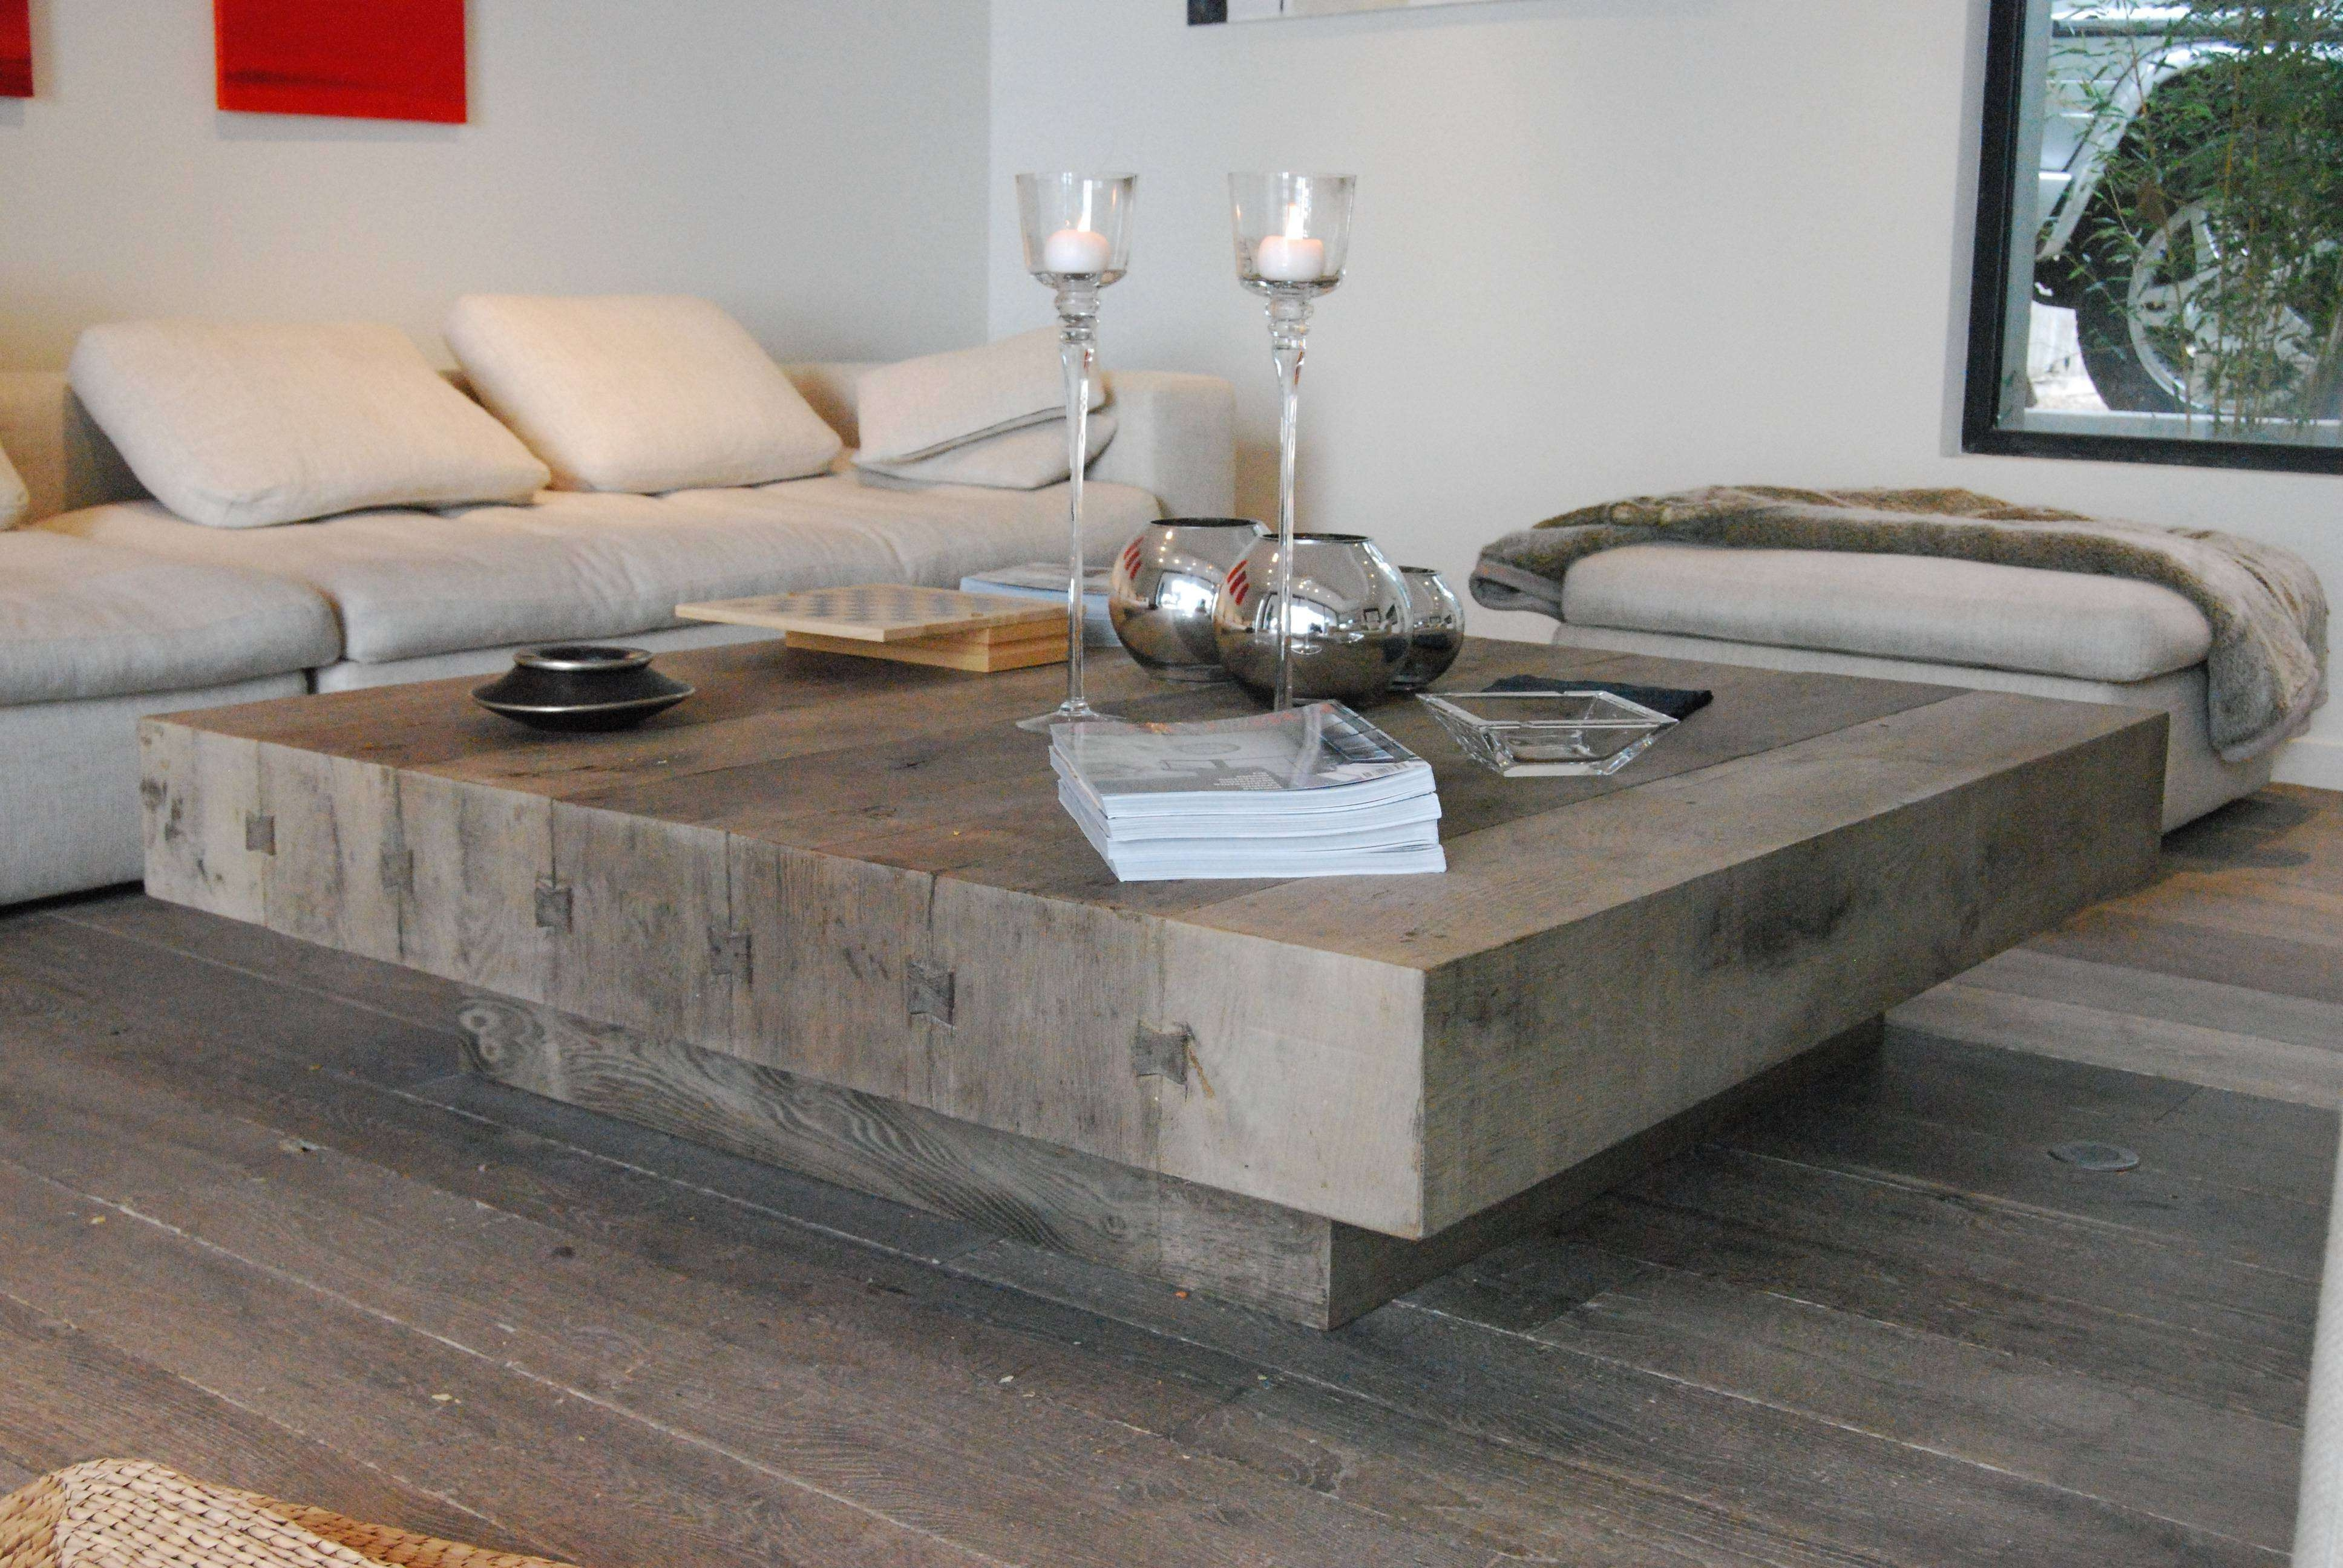 Preferred Low Square Wooden Coffee Tables Regarding Coffee Tables : Splendid Vgs Bloc Sq Square Coffee Tables Block (View 16 of 20)